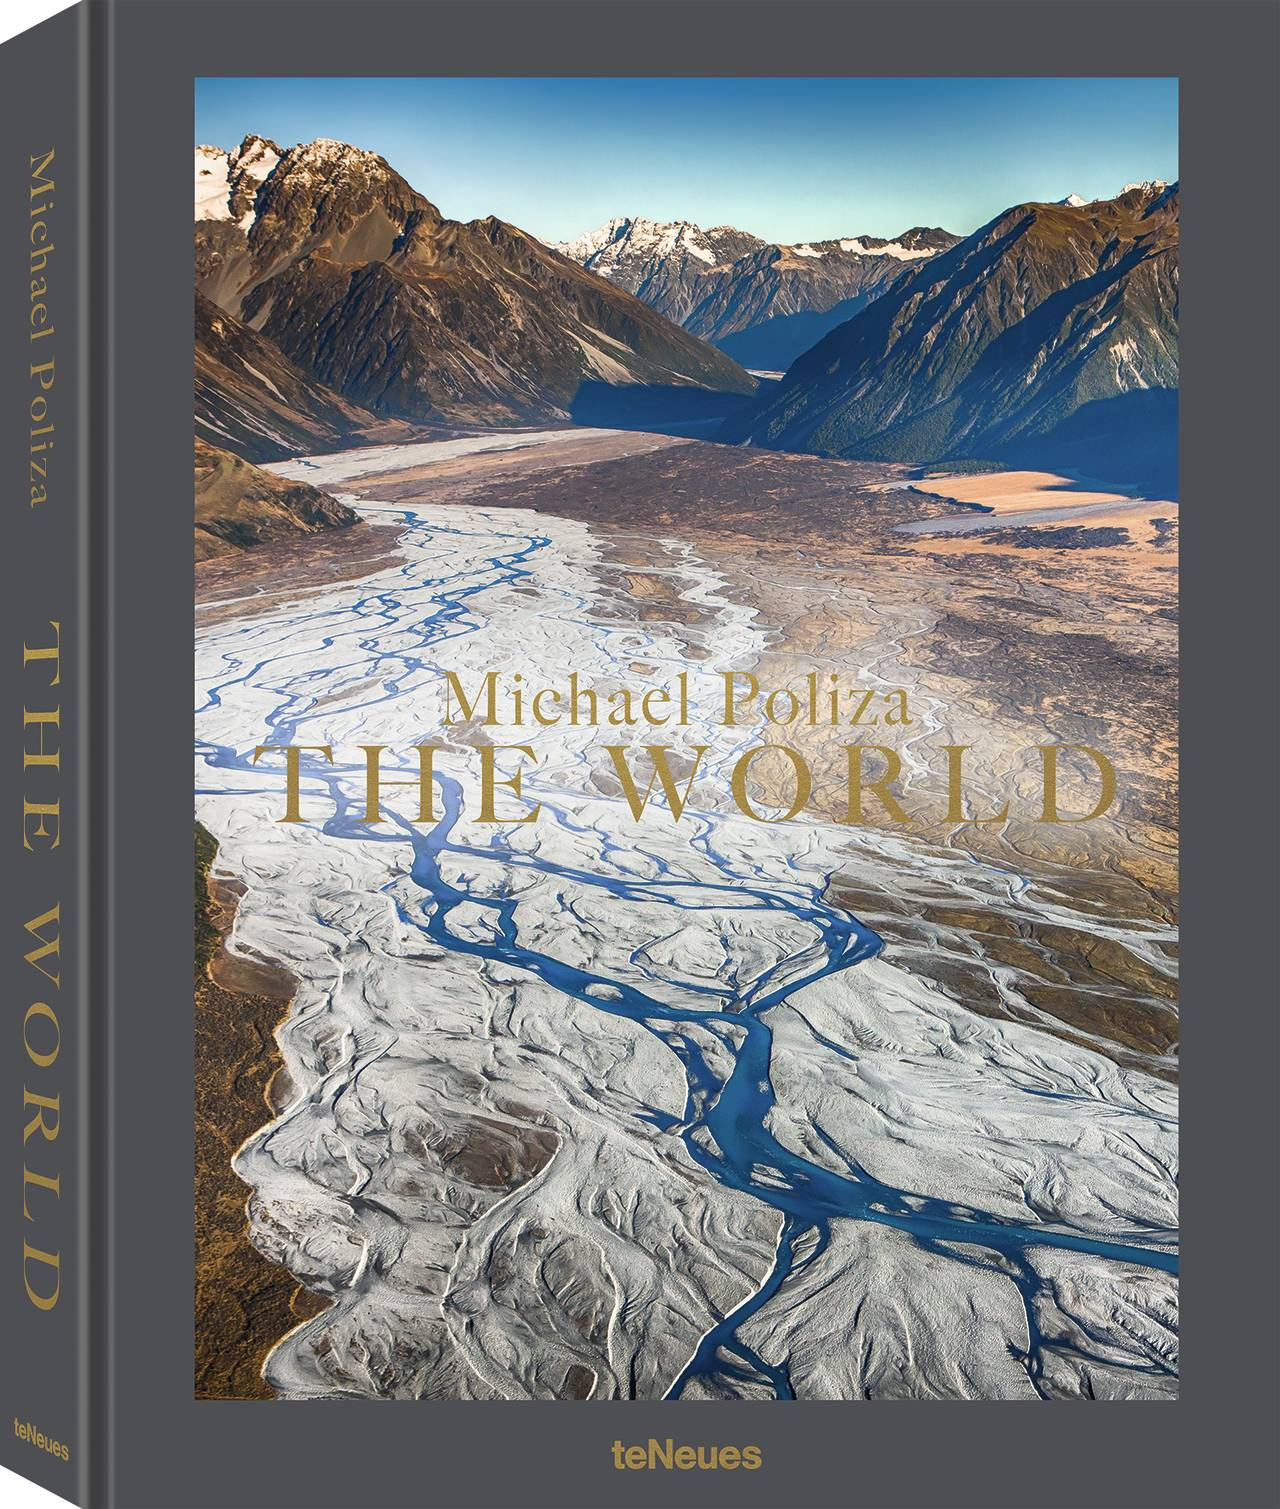 © THE WORLD by Michael Poliza, to be published by teNeues in October 2019, www.teneues.com, Hopkins Valley near Lake Ohau, South Island, Photo © 2019 Michael Poliza. All rights reserved. www.michaelpoliza.com, www.michaelpolizatravel.com